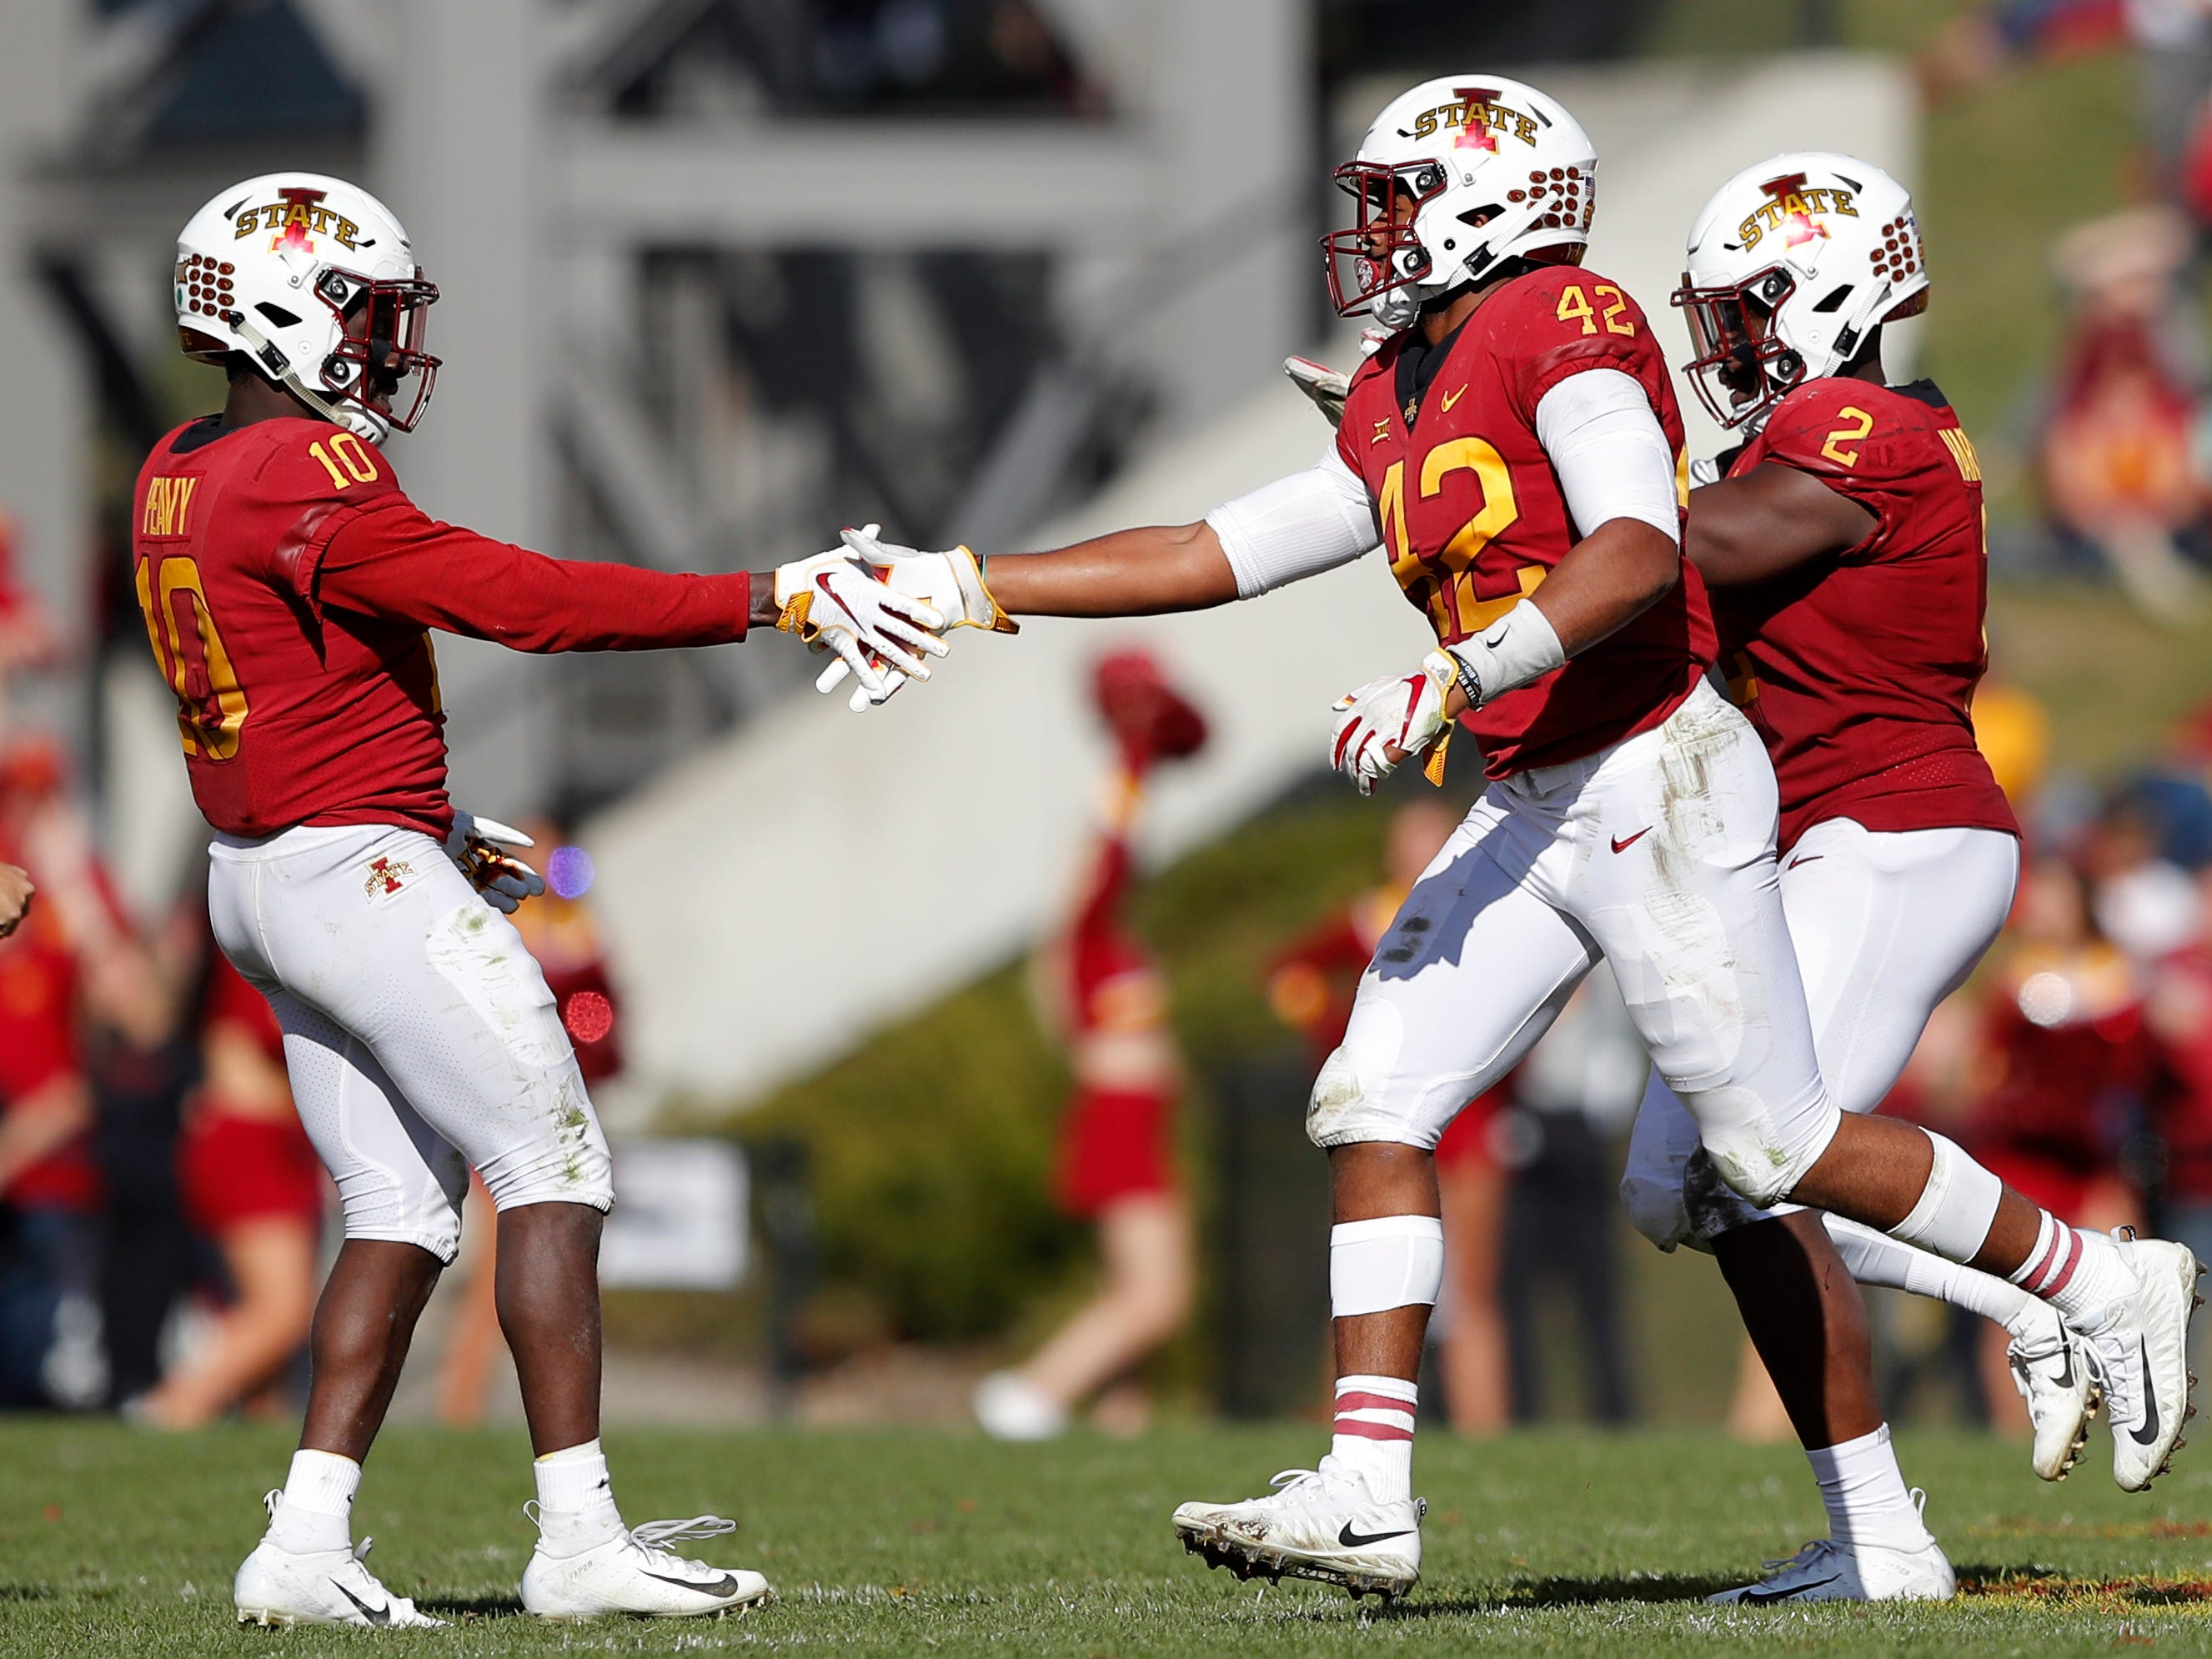 Iowa State linebacker Marcel Spears Jr. (42) celebrates with teammate Brian Peavy (10) after intercepting a pass during the second half of an NCAA college football game against Texas Tech, Saturday, Oct. 27, 2018, in Ames, Iowa.